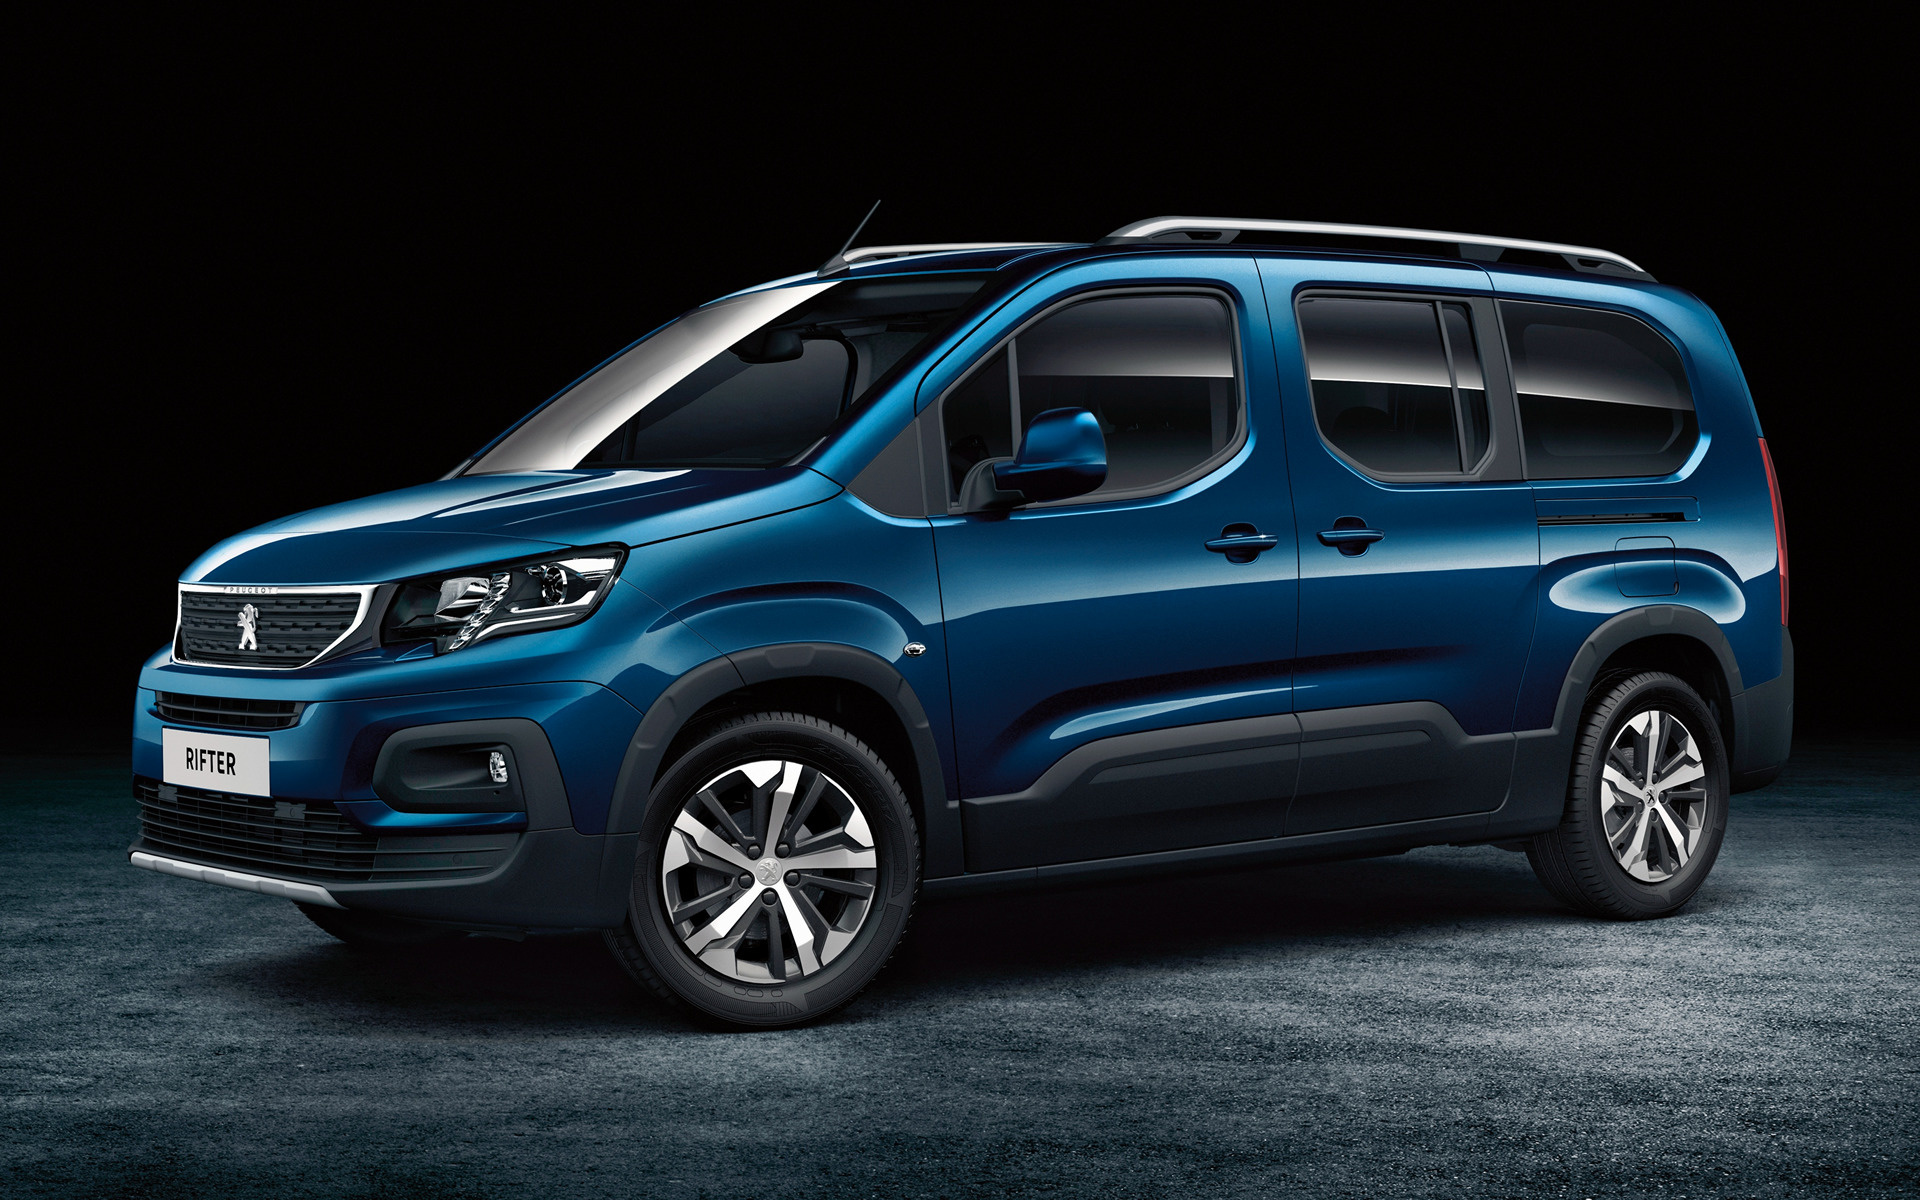 2018 peugeot rifter lwb wallpapers and hd images car. Black Bedroom Furniture Sets. Home Design Ideas